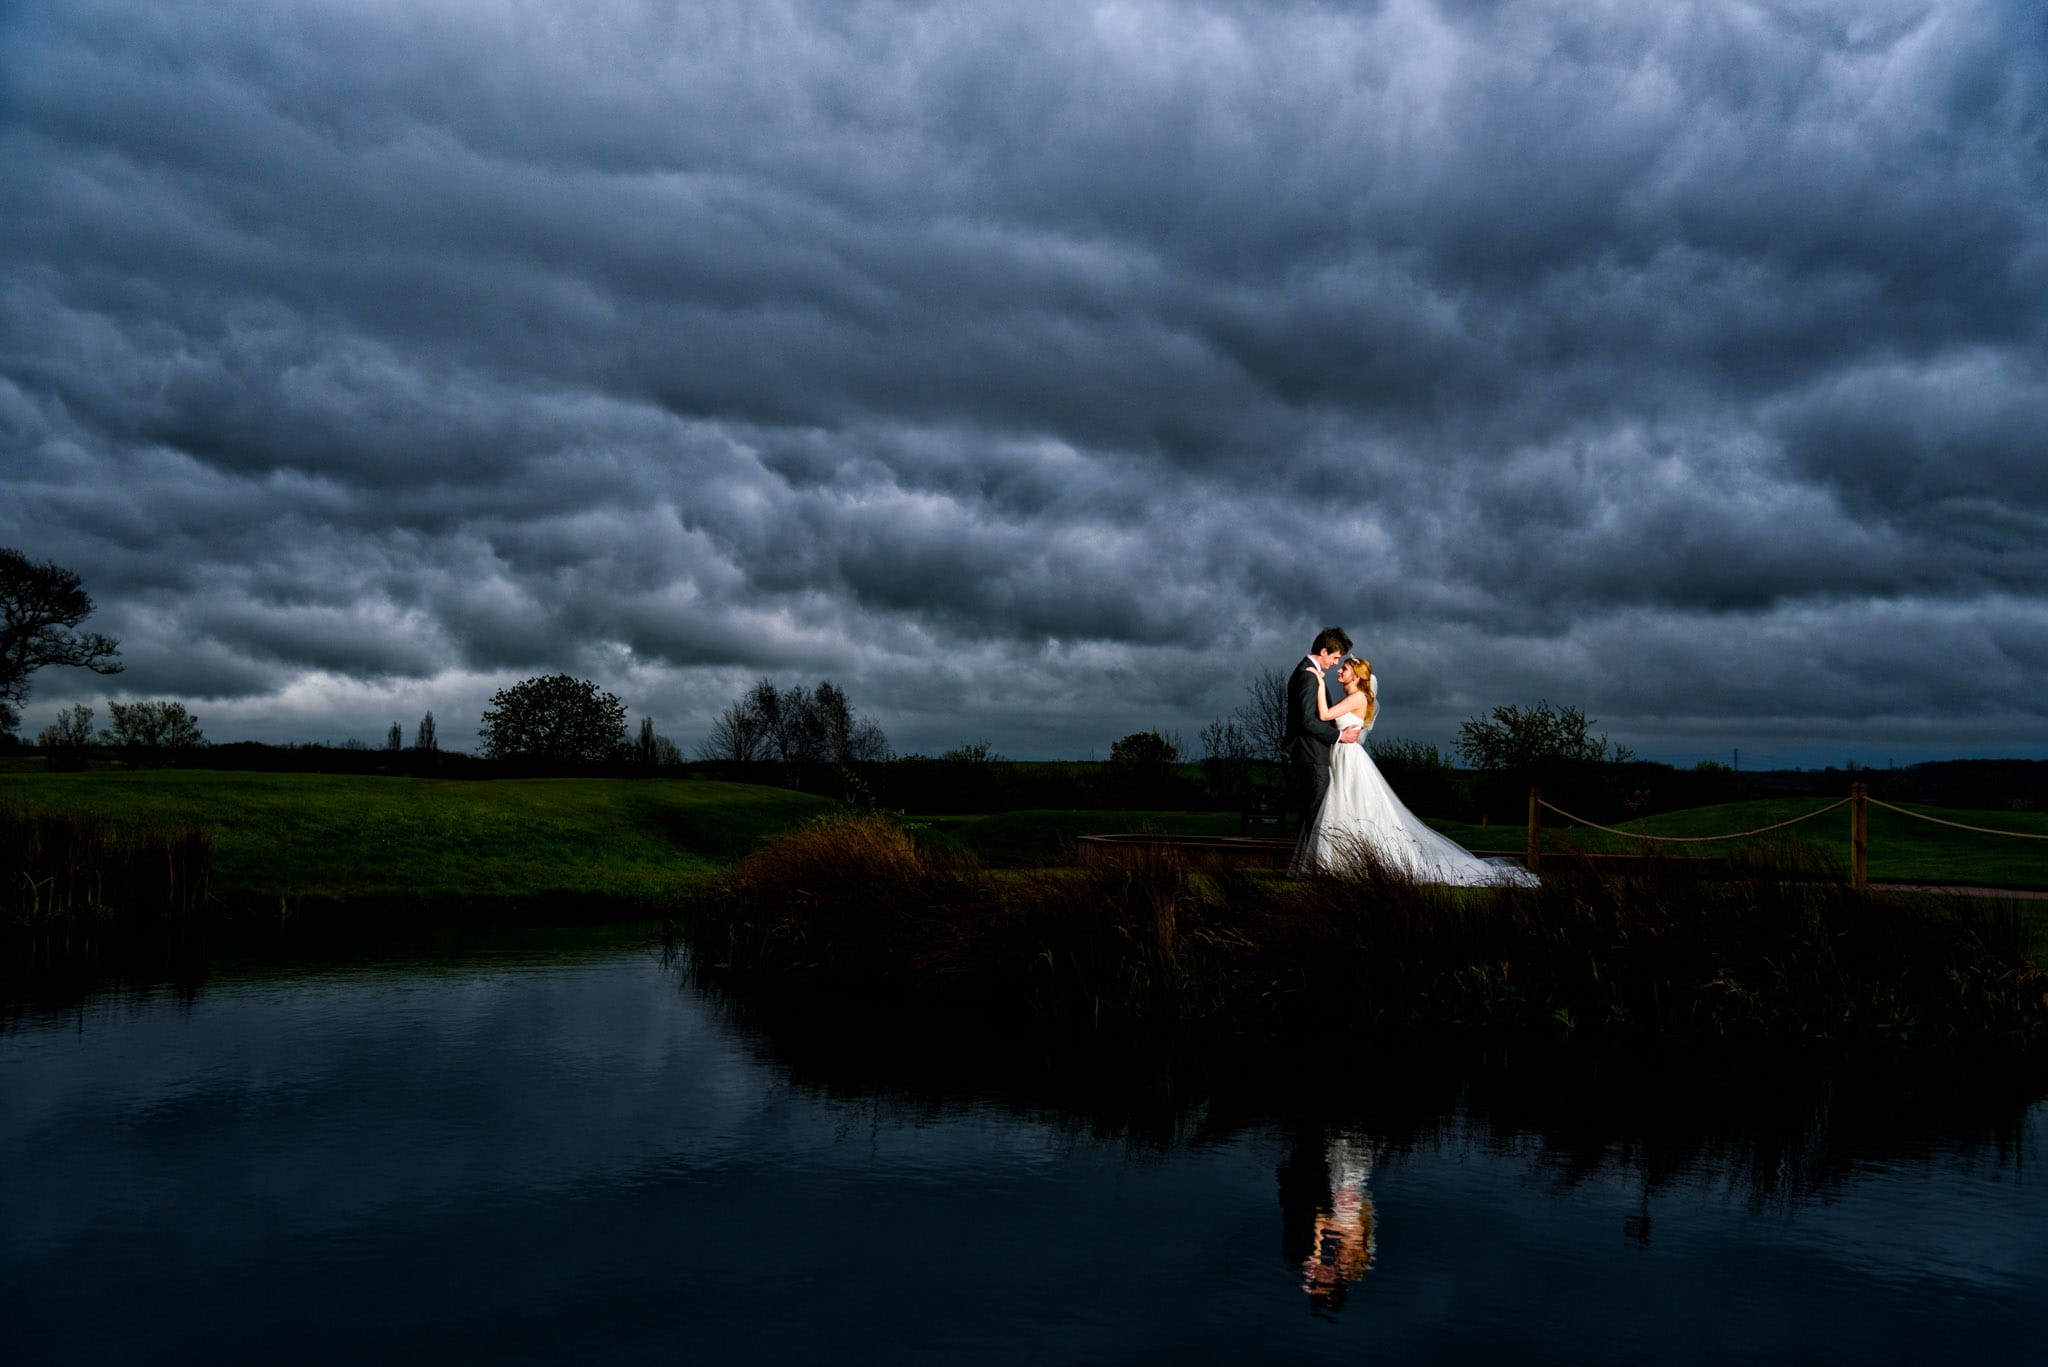 Bride & Groom at a rainy wedding at The Nottinghamshire